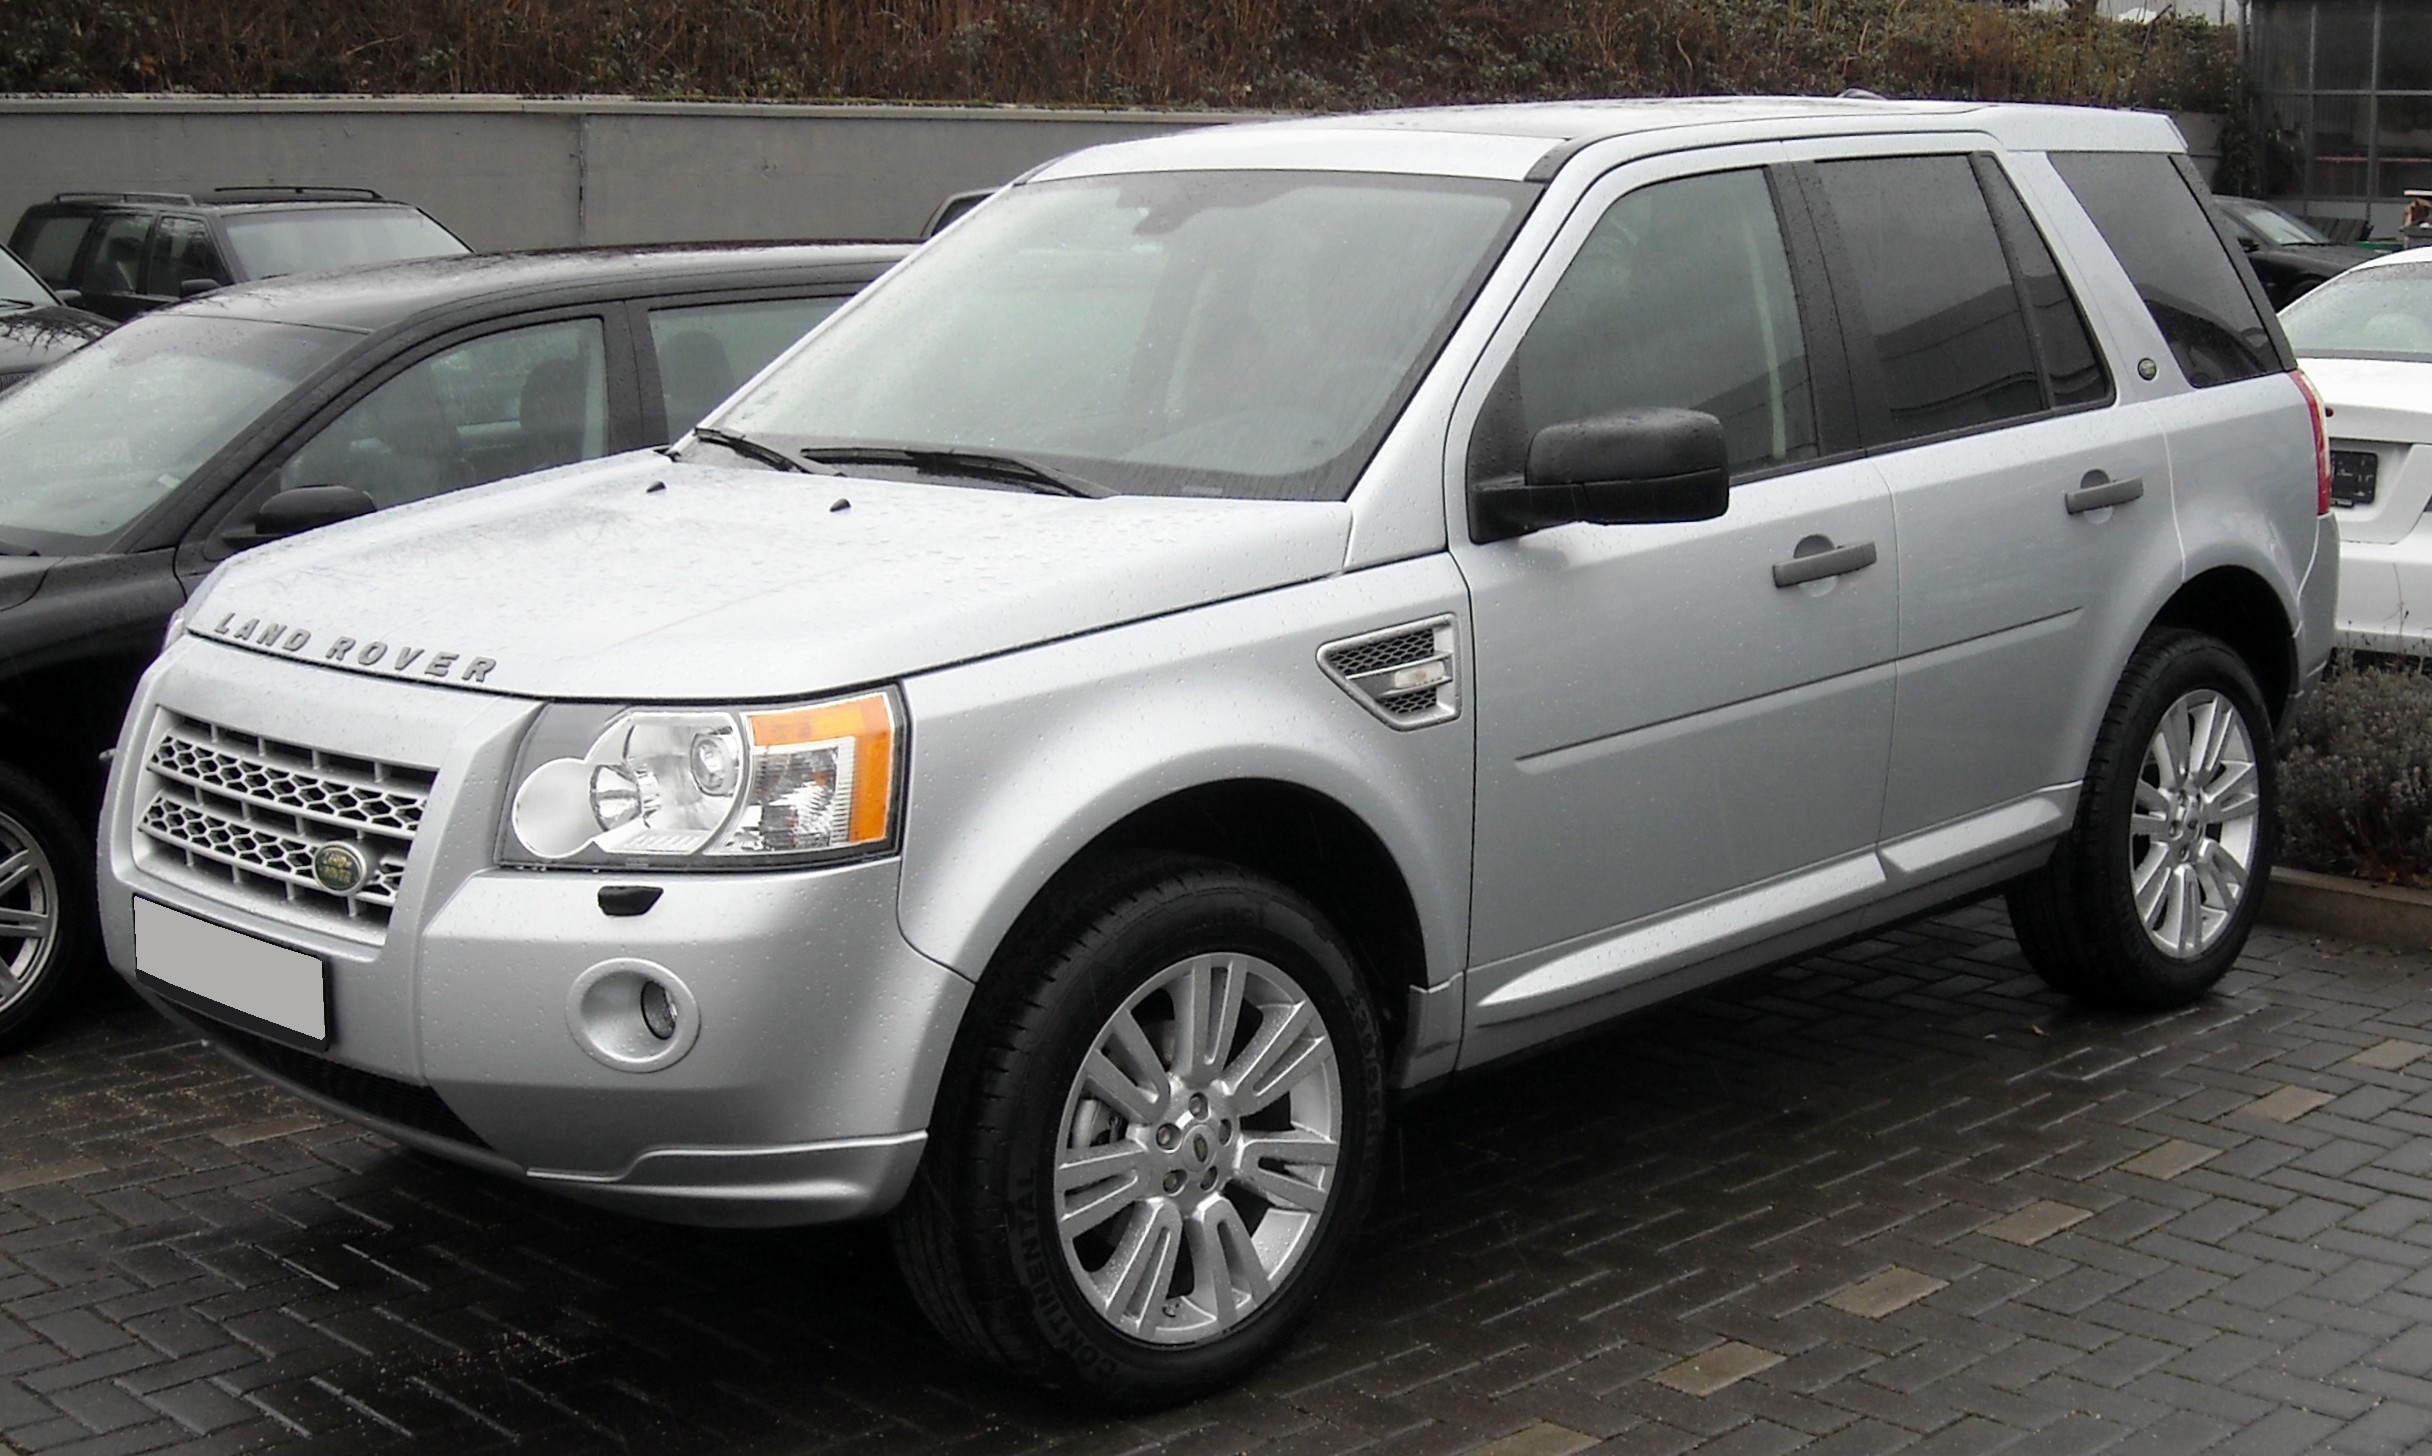 2004 Land Rover Freelander Information and photos ZombieDrive